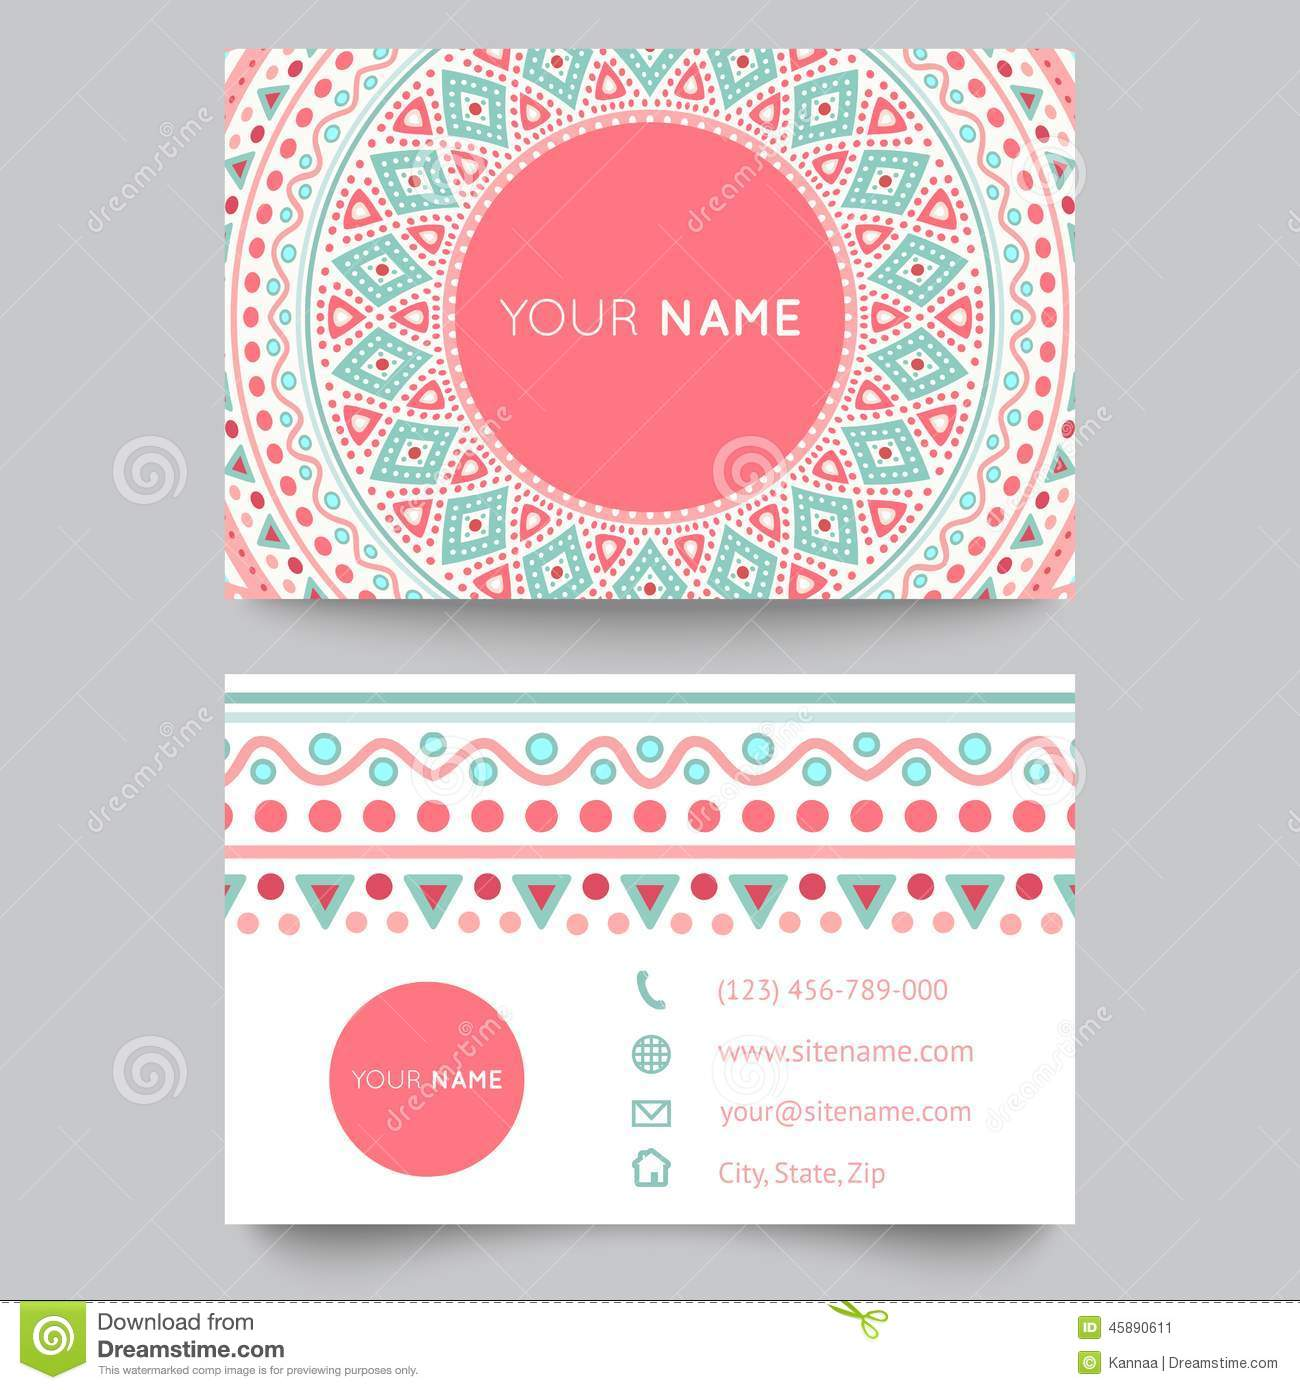 Business card template blue white and pink stock vector download business card template blue white and pink stock vector illustration of background reheart